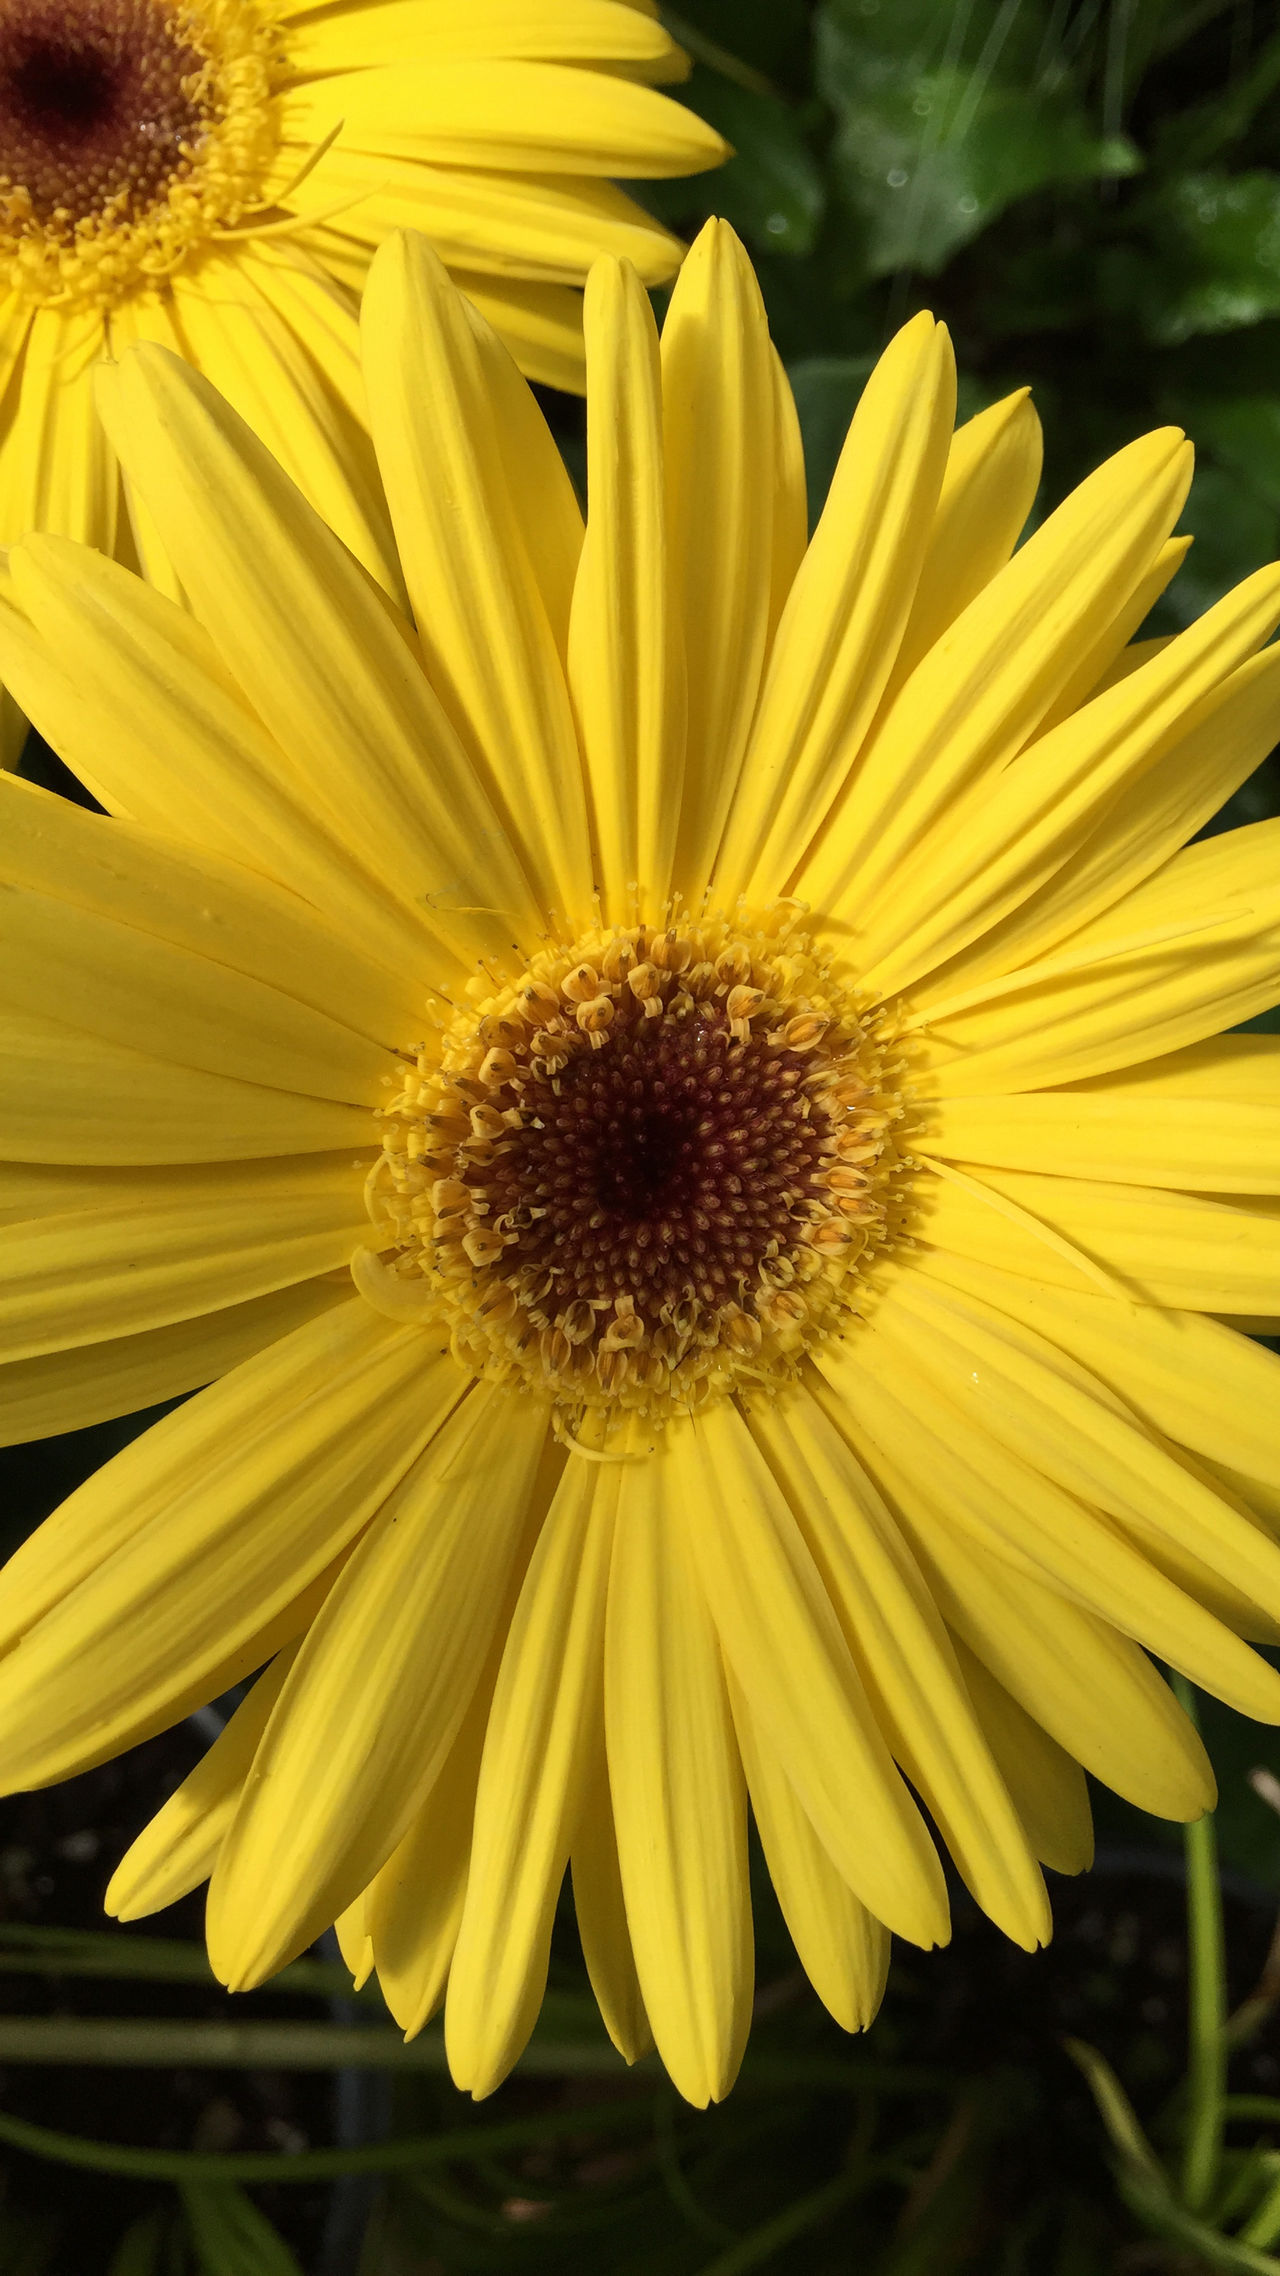 Twin Suns Backgrounds Beauty In Nature Black-eyed Susan Close-up Daisy Day Flower Flower Head Flowers Fragility Freshness Garden Garden Photography Gardening Gerbera Daisy Macro Nature Nature No People Outdoors Petal Pollen Sunflower Yellow Yellow Flower